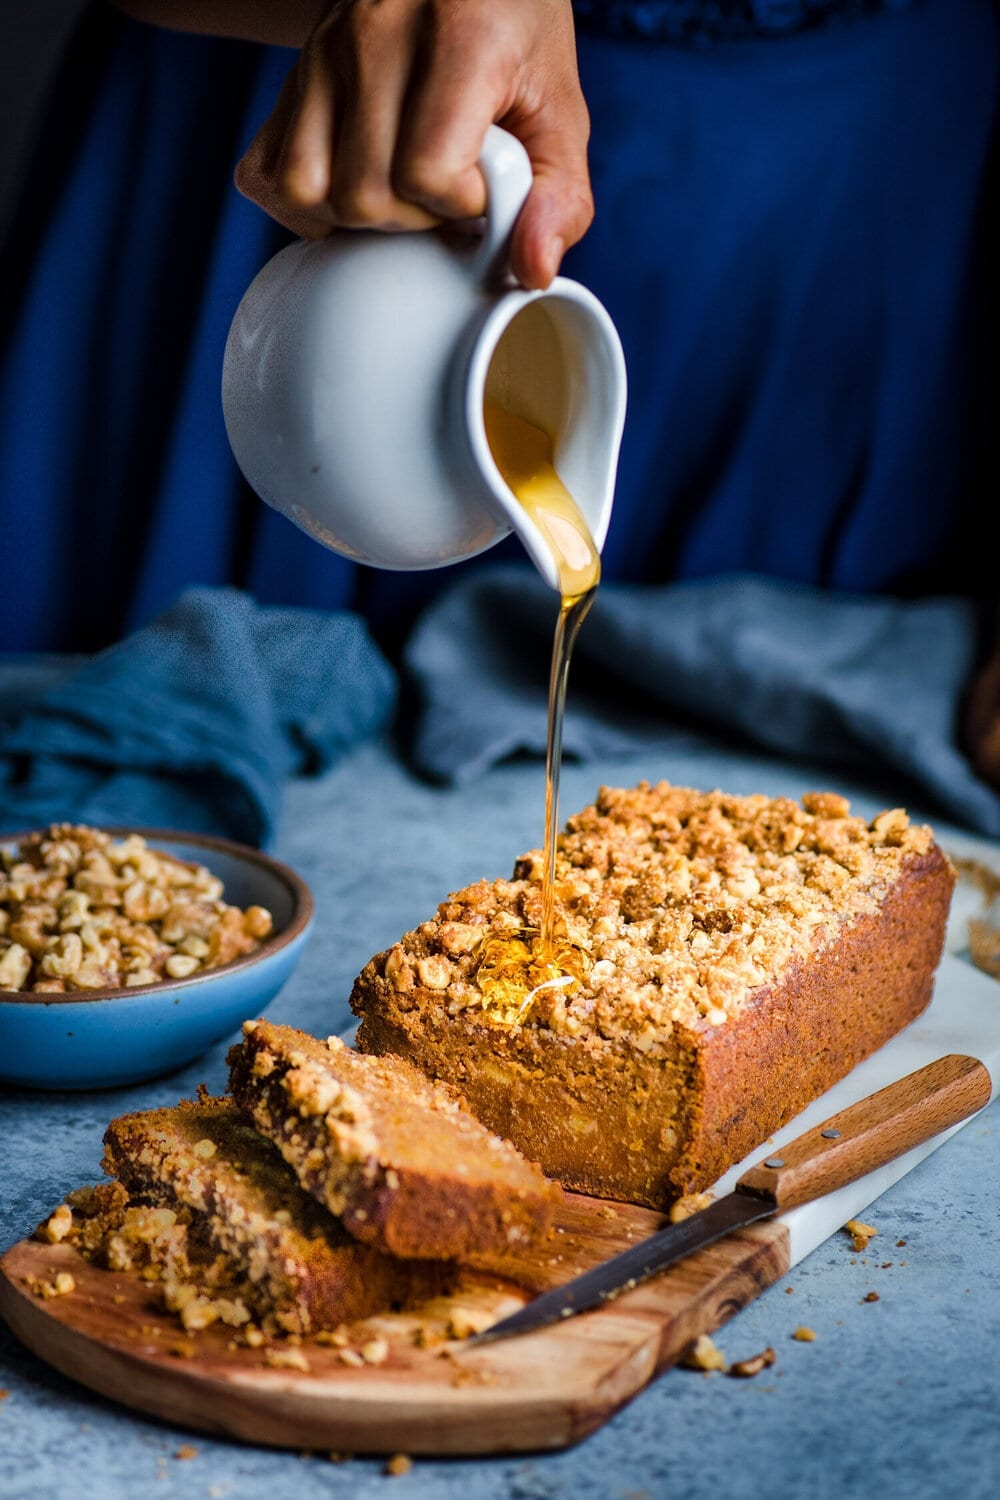 kabocha+squash+banana+bread+3x2+(1+of+1).jpg